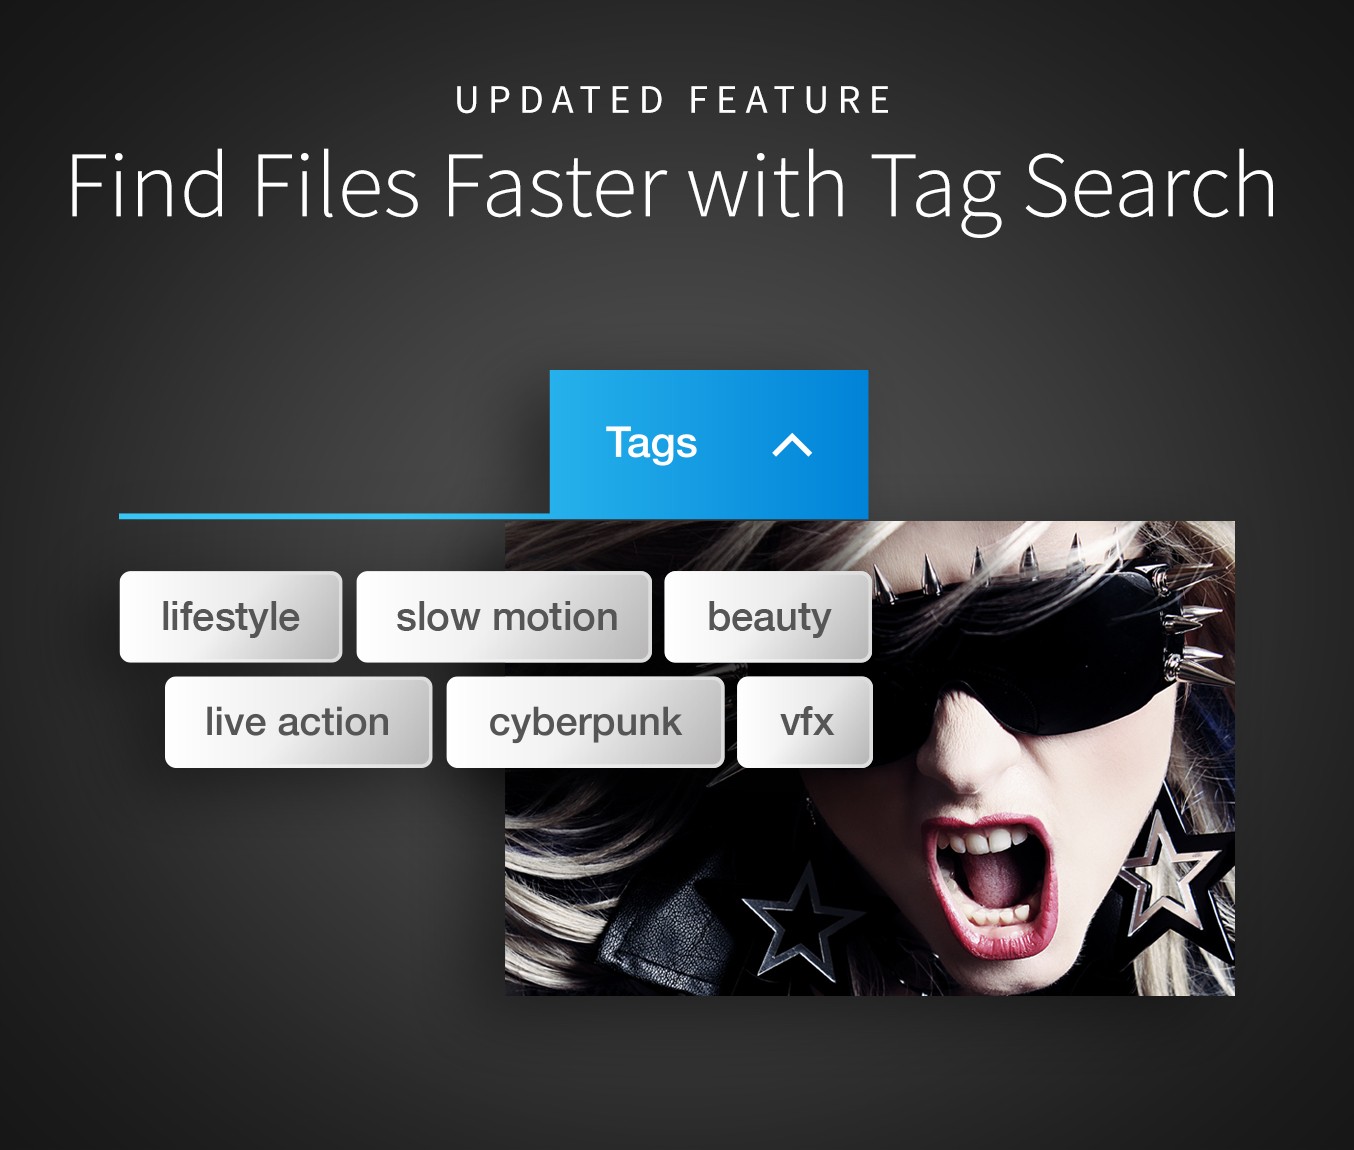 Work Faster with Our new Tag Search Capability